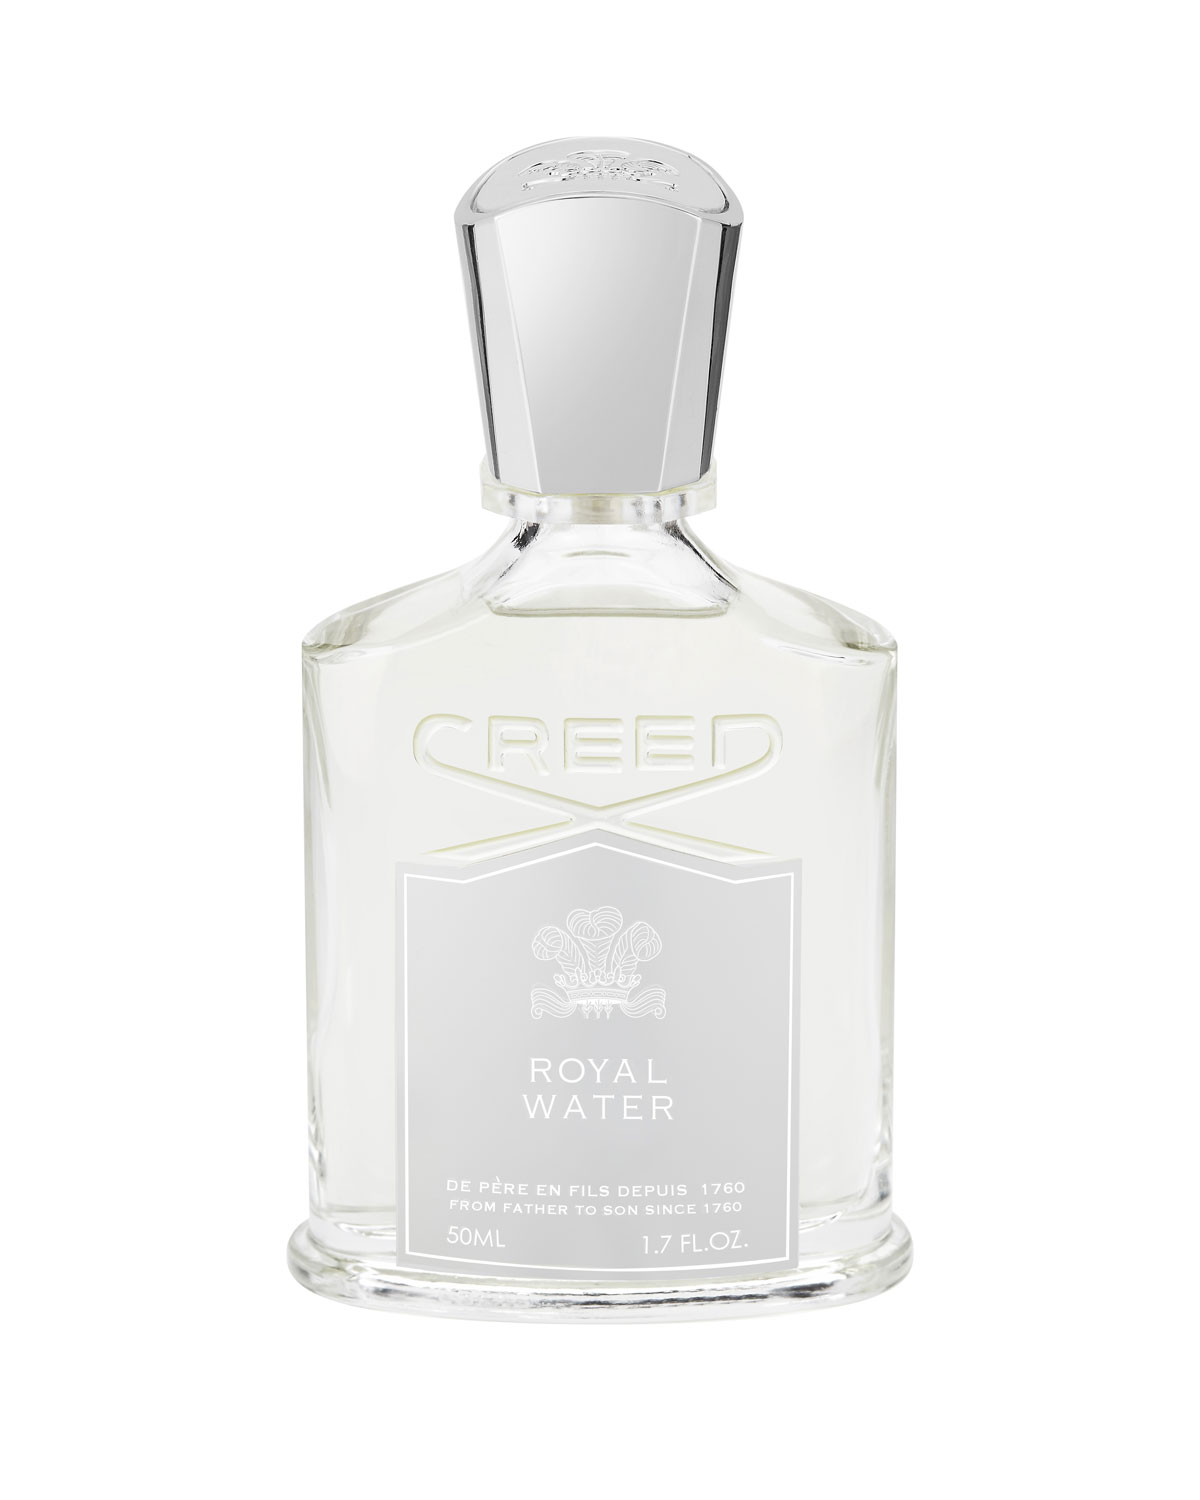 cc23202c CREED Royal Water & Matching Items | Neiman Marcus